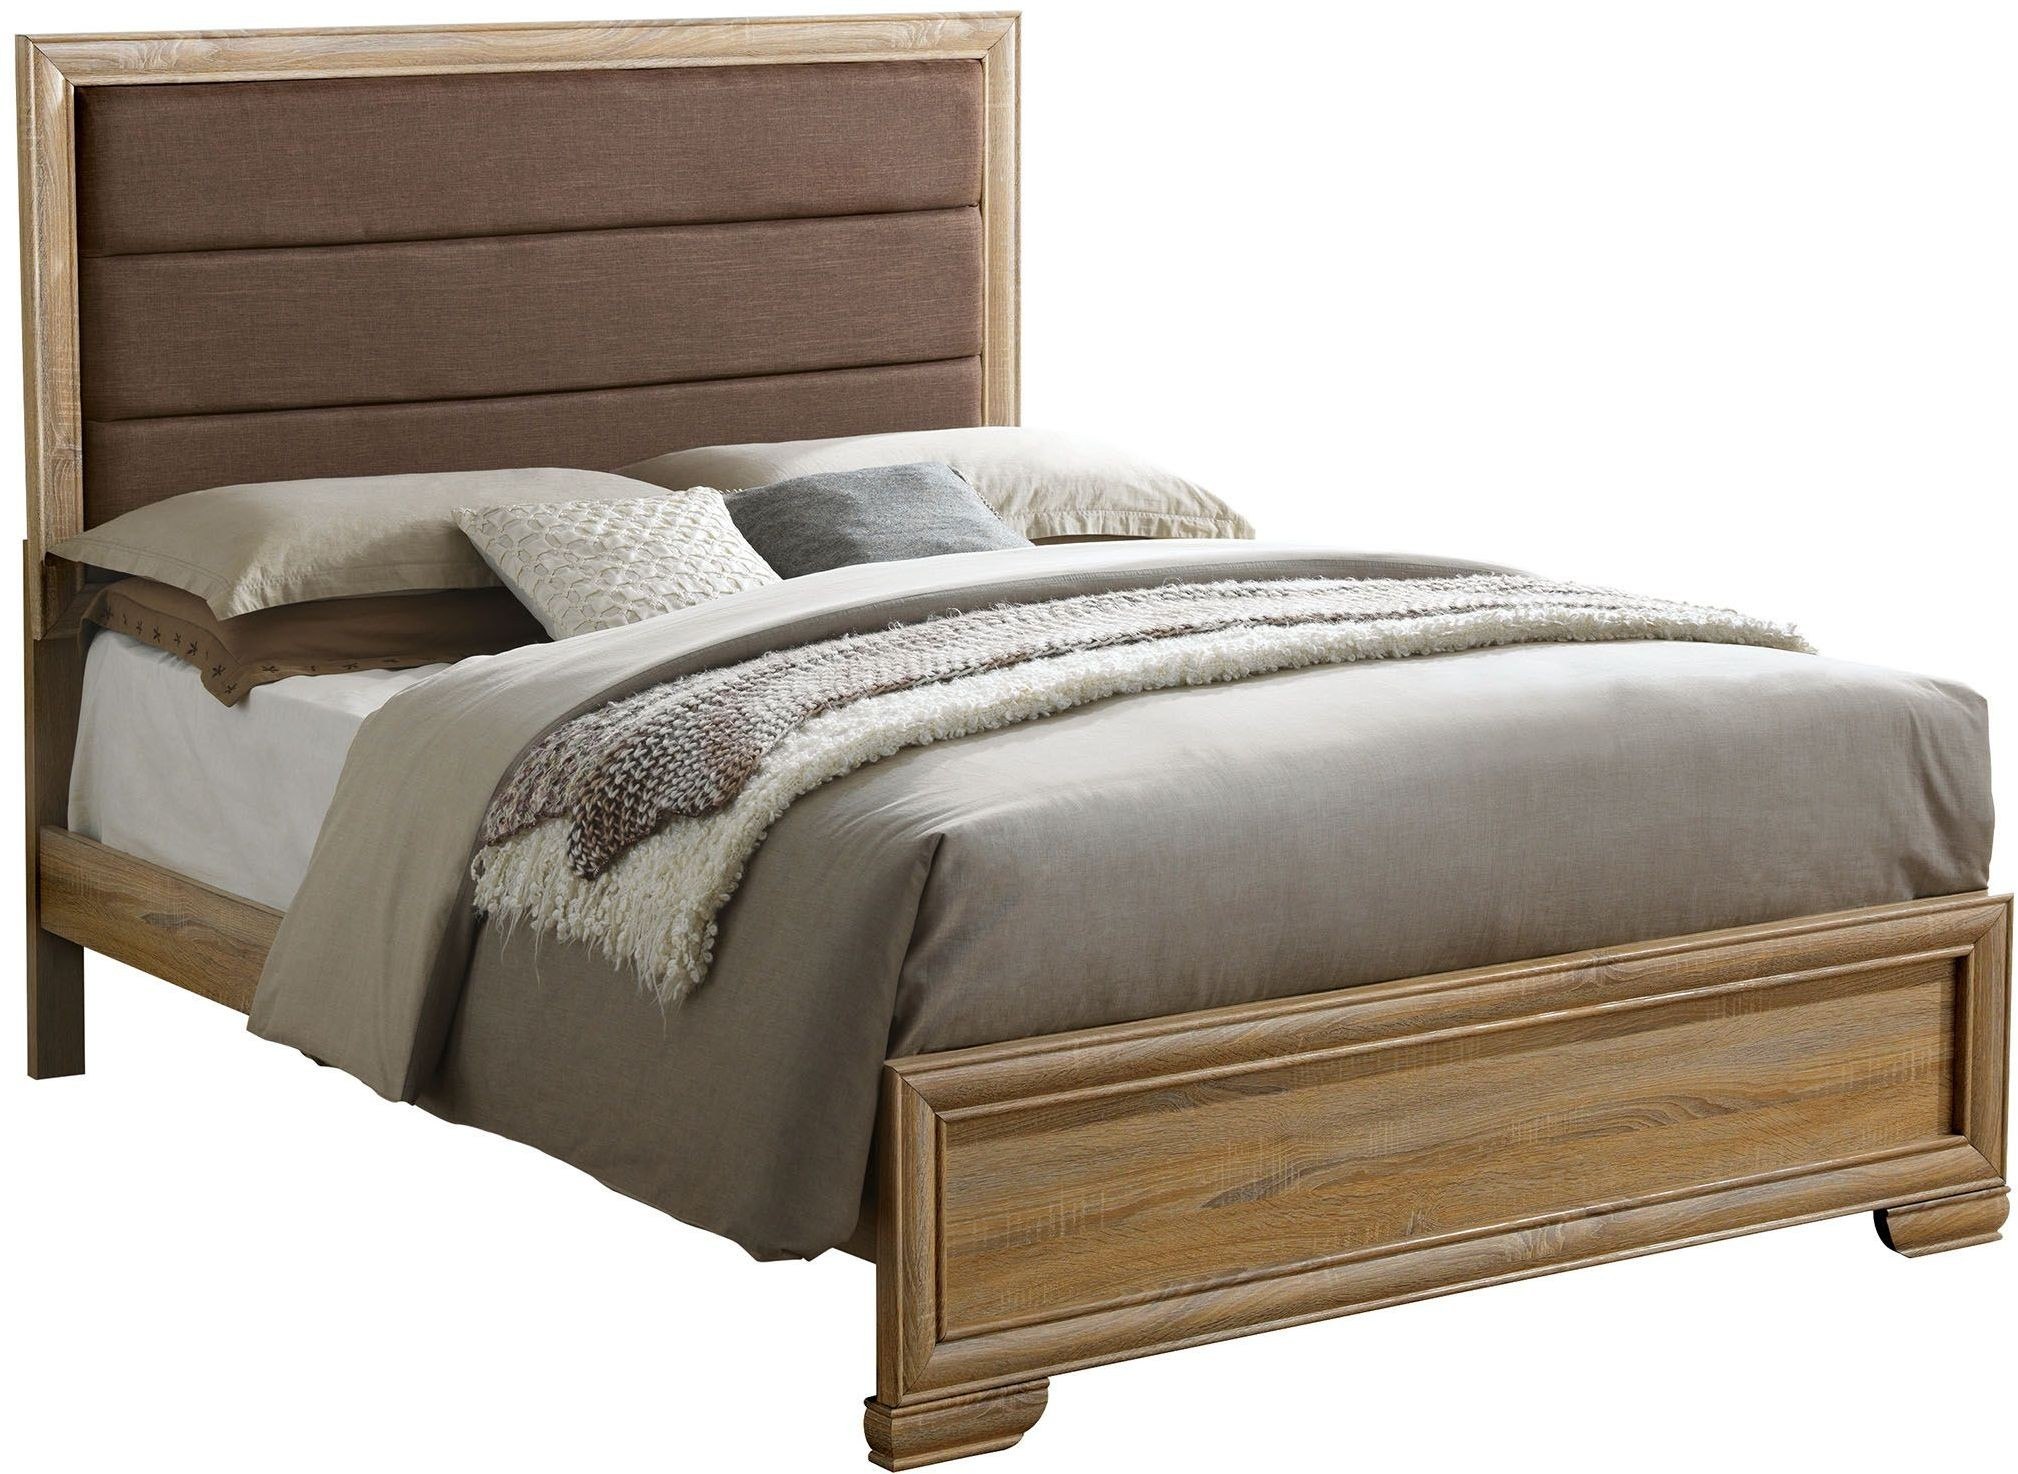 Renee natural cal king upholstered platform bed from for Furniture of america mattress